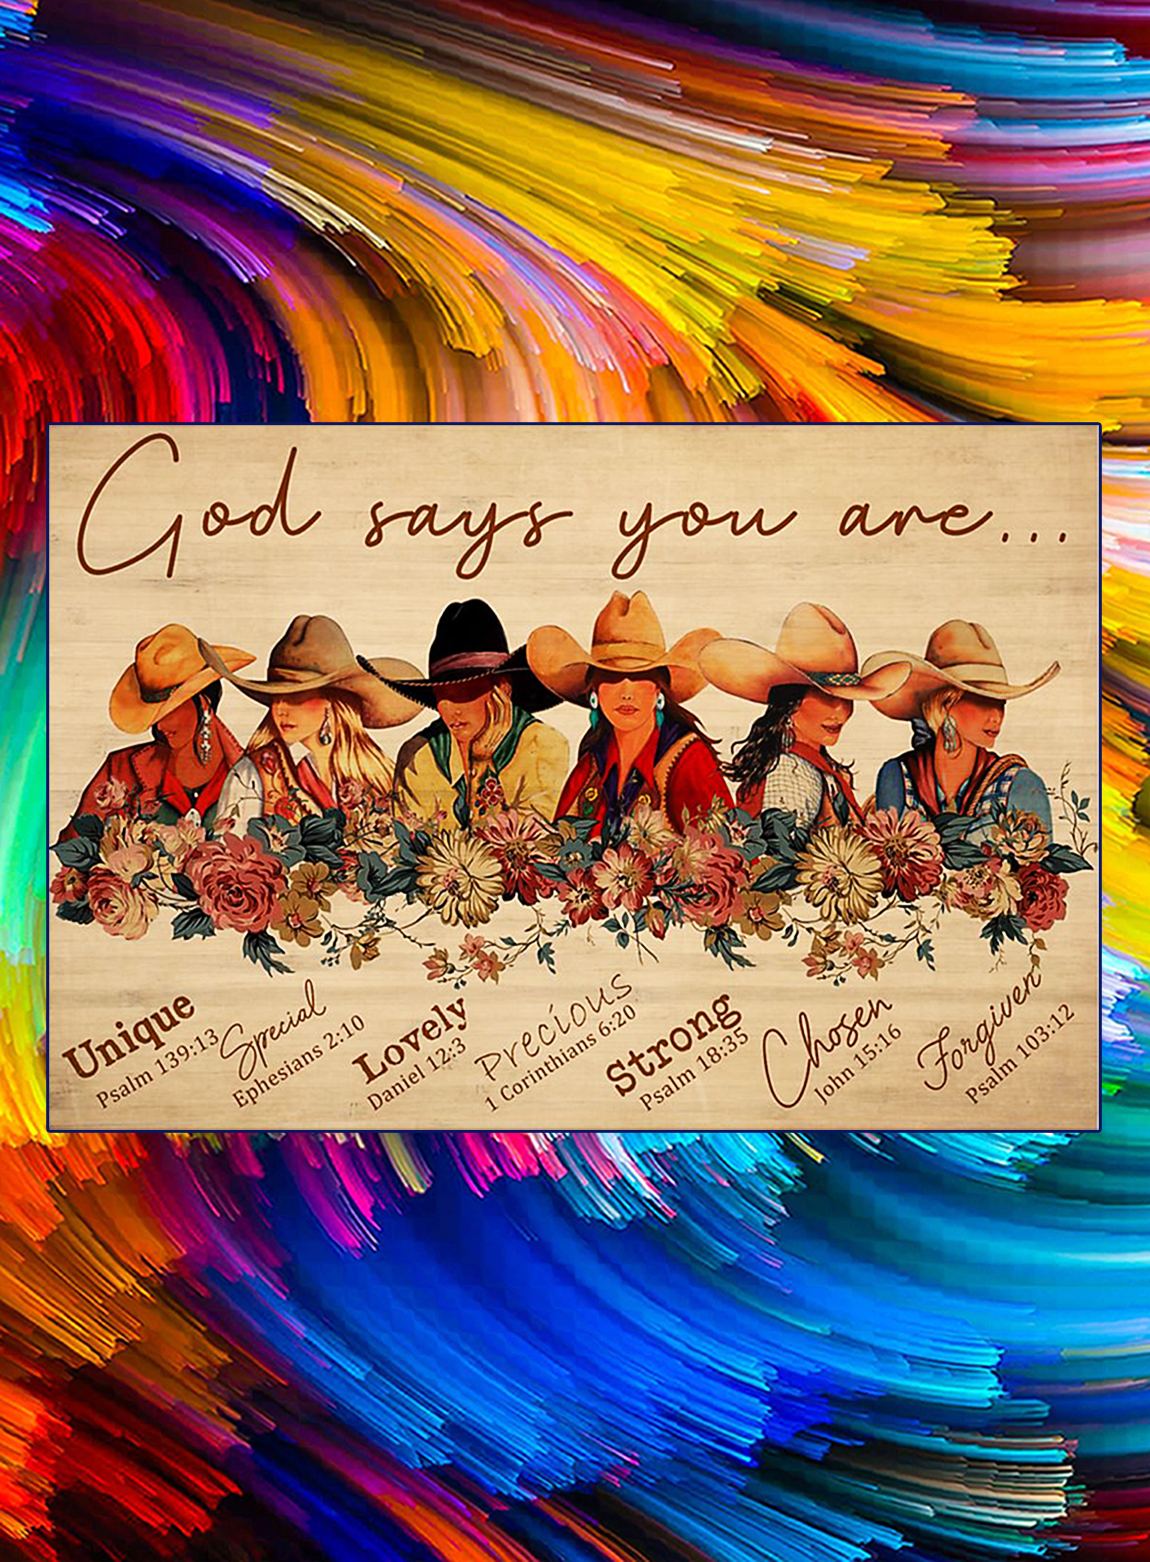 Cowgirl God says you are poster - A3